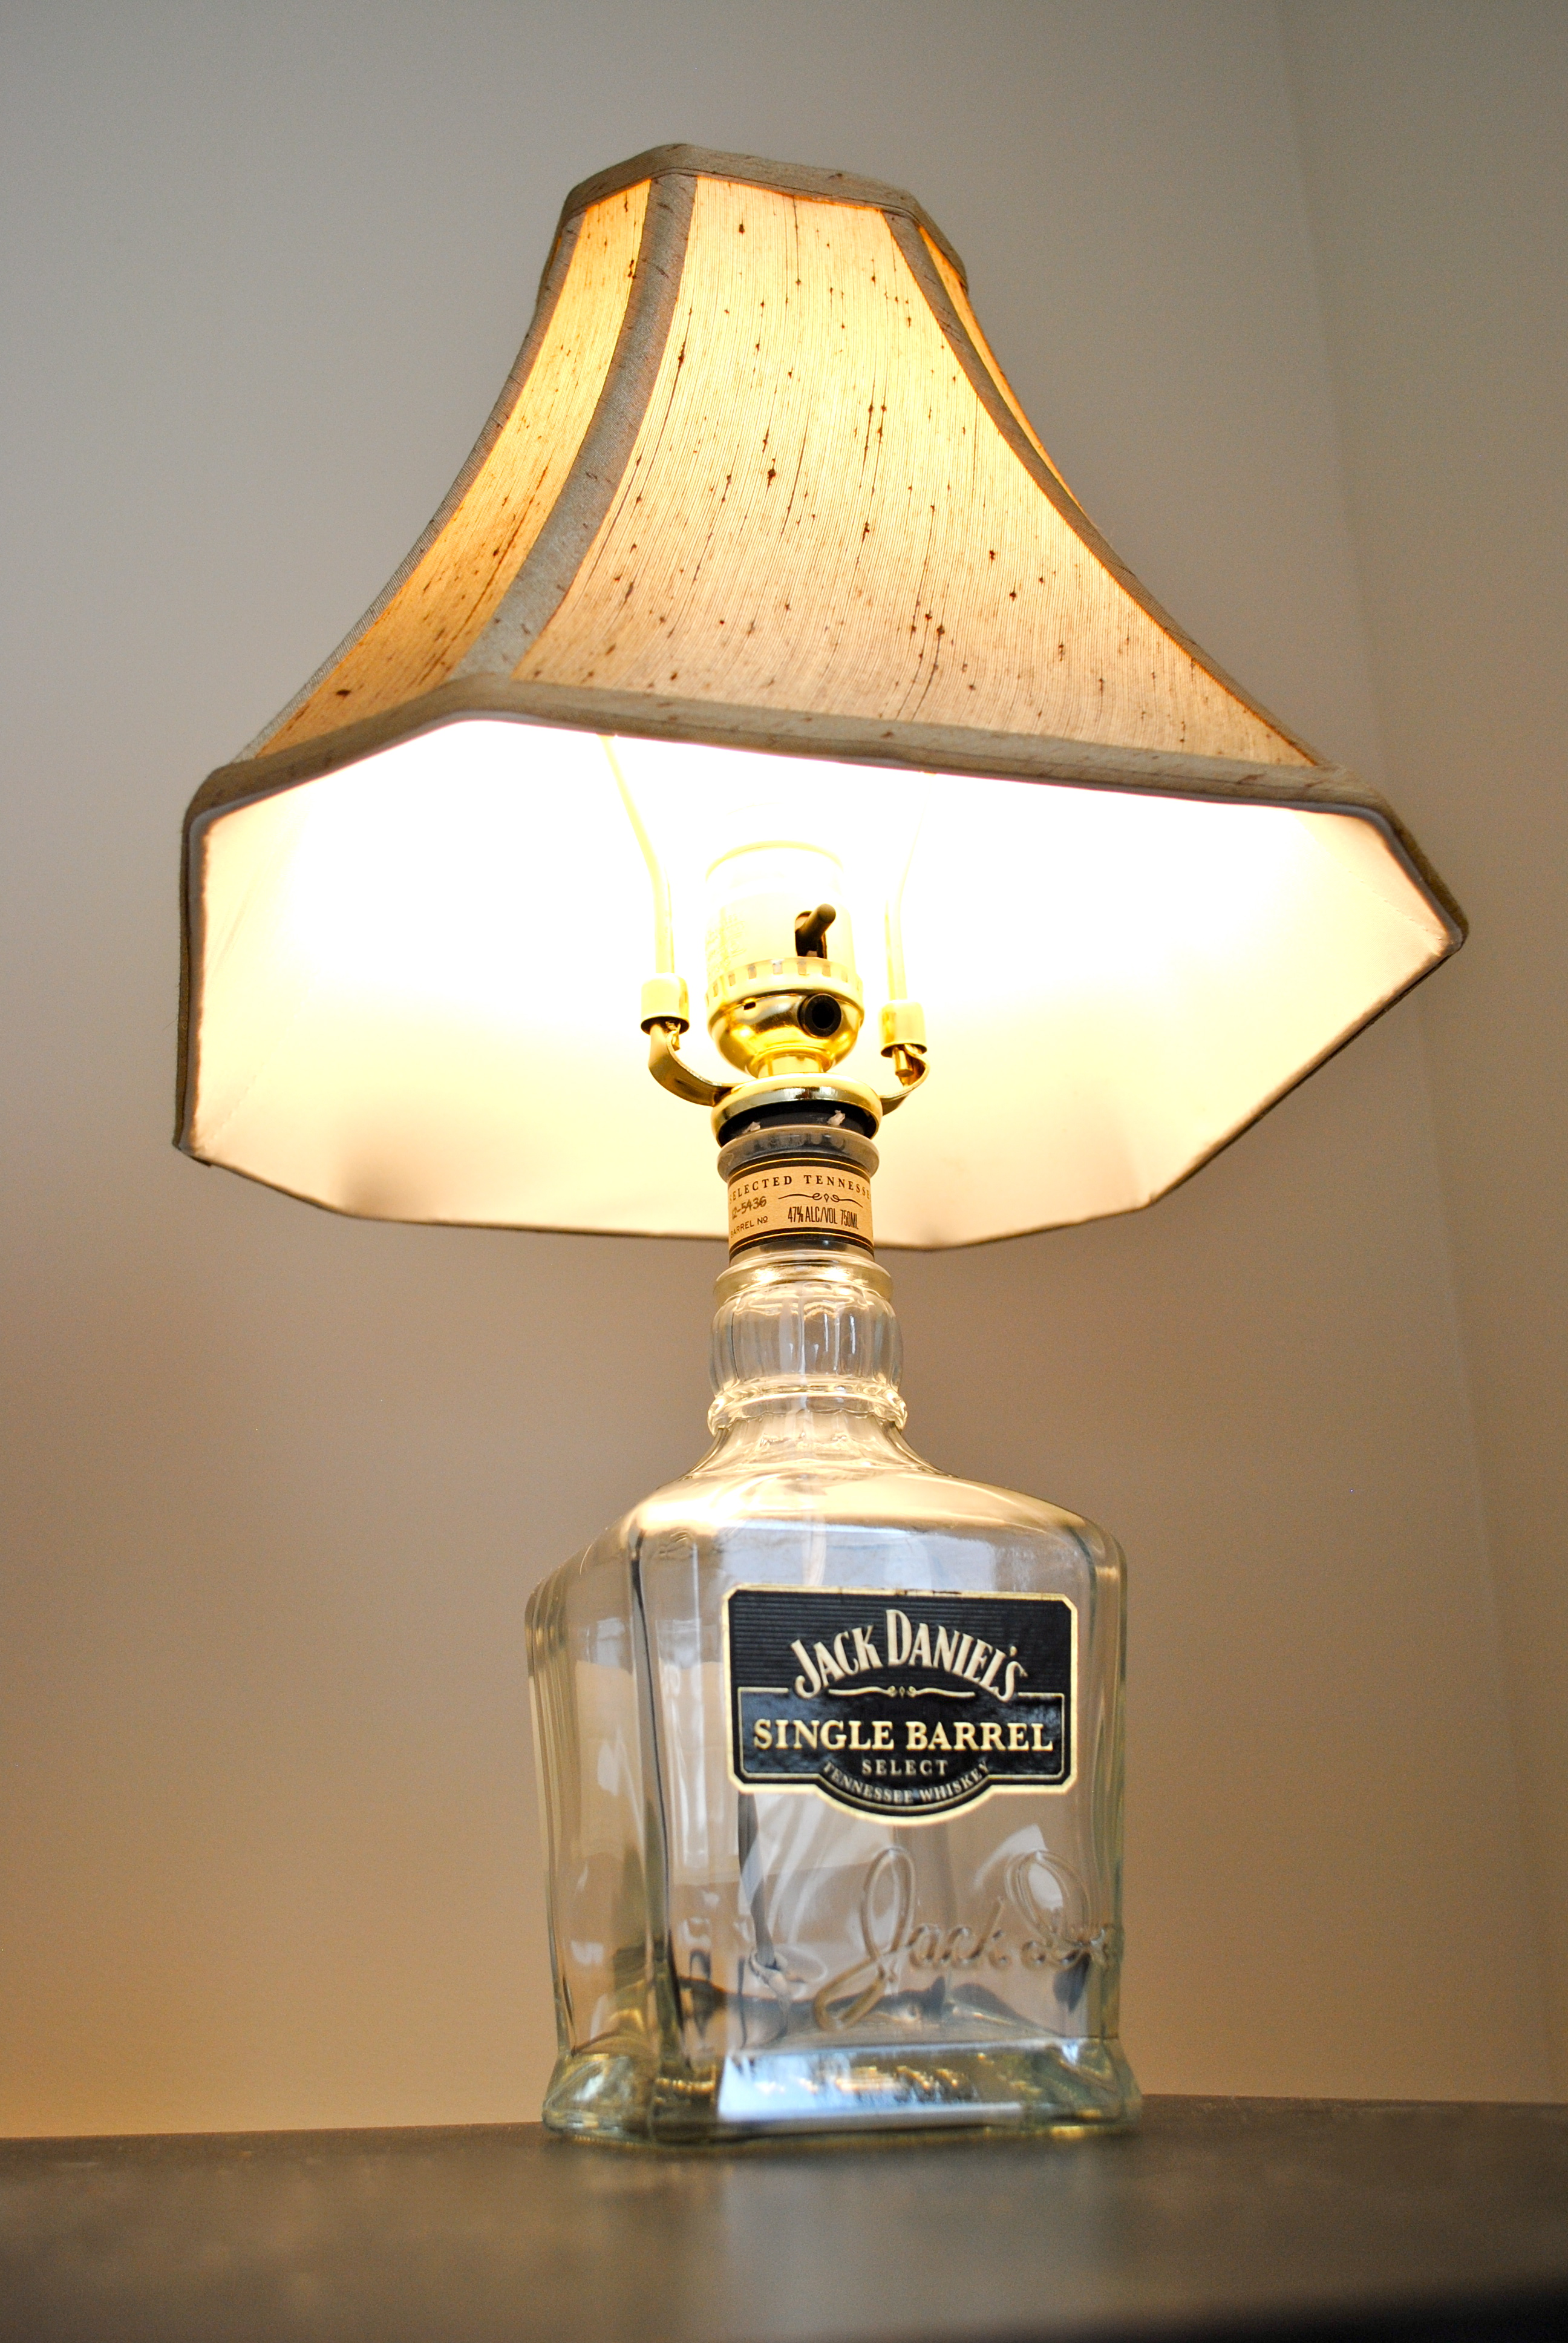 Making A Jack Daniels Lamp Is An Easy Task And Will Surely Get You An  Elegant Homemade Lamp That Can Be Used Dynamically Wherever You Wish To At  Home.